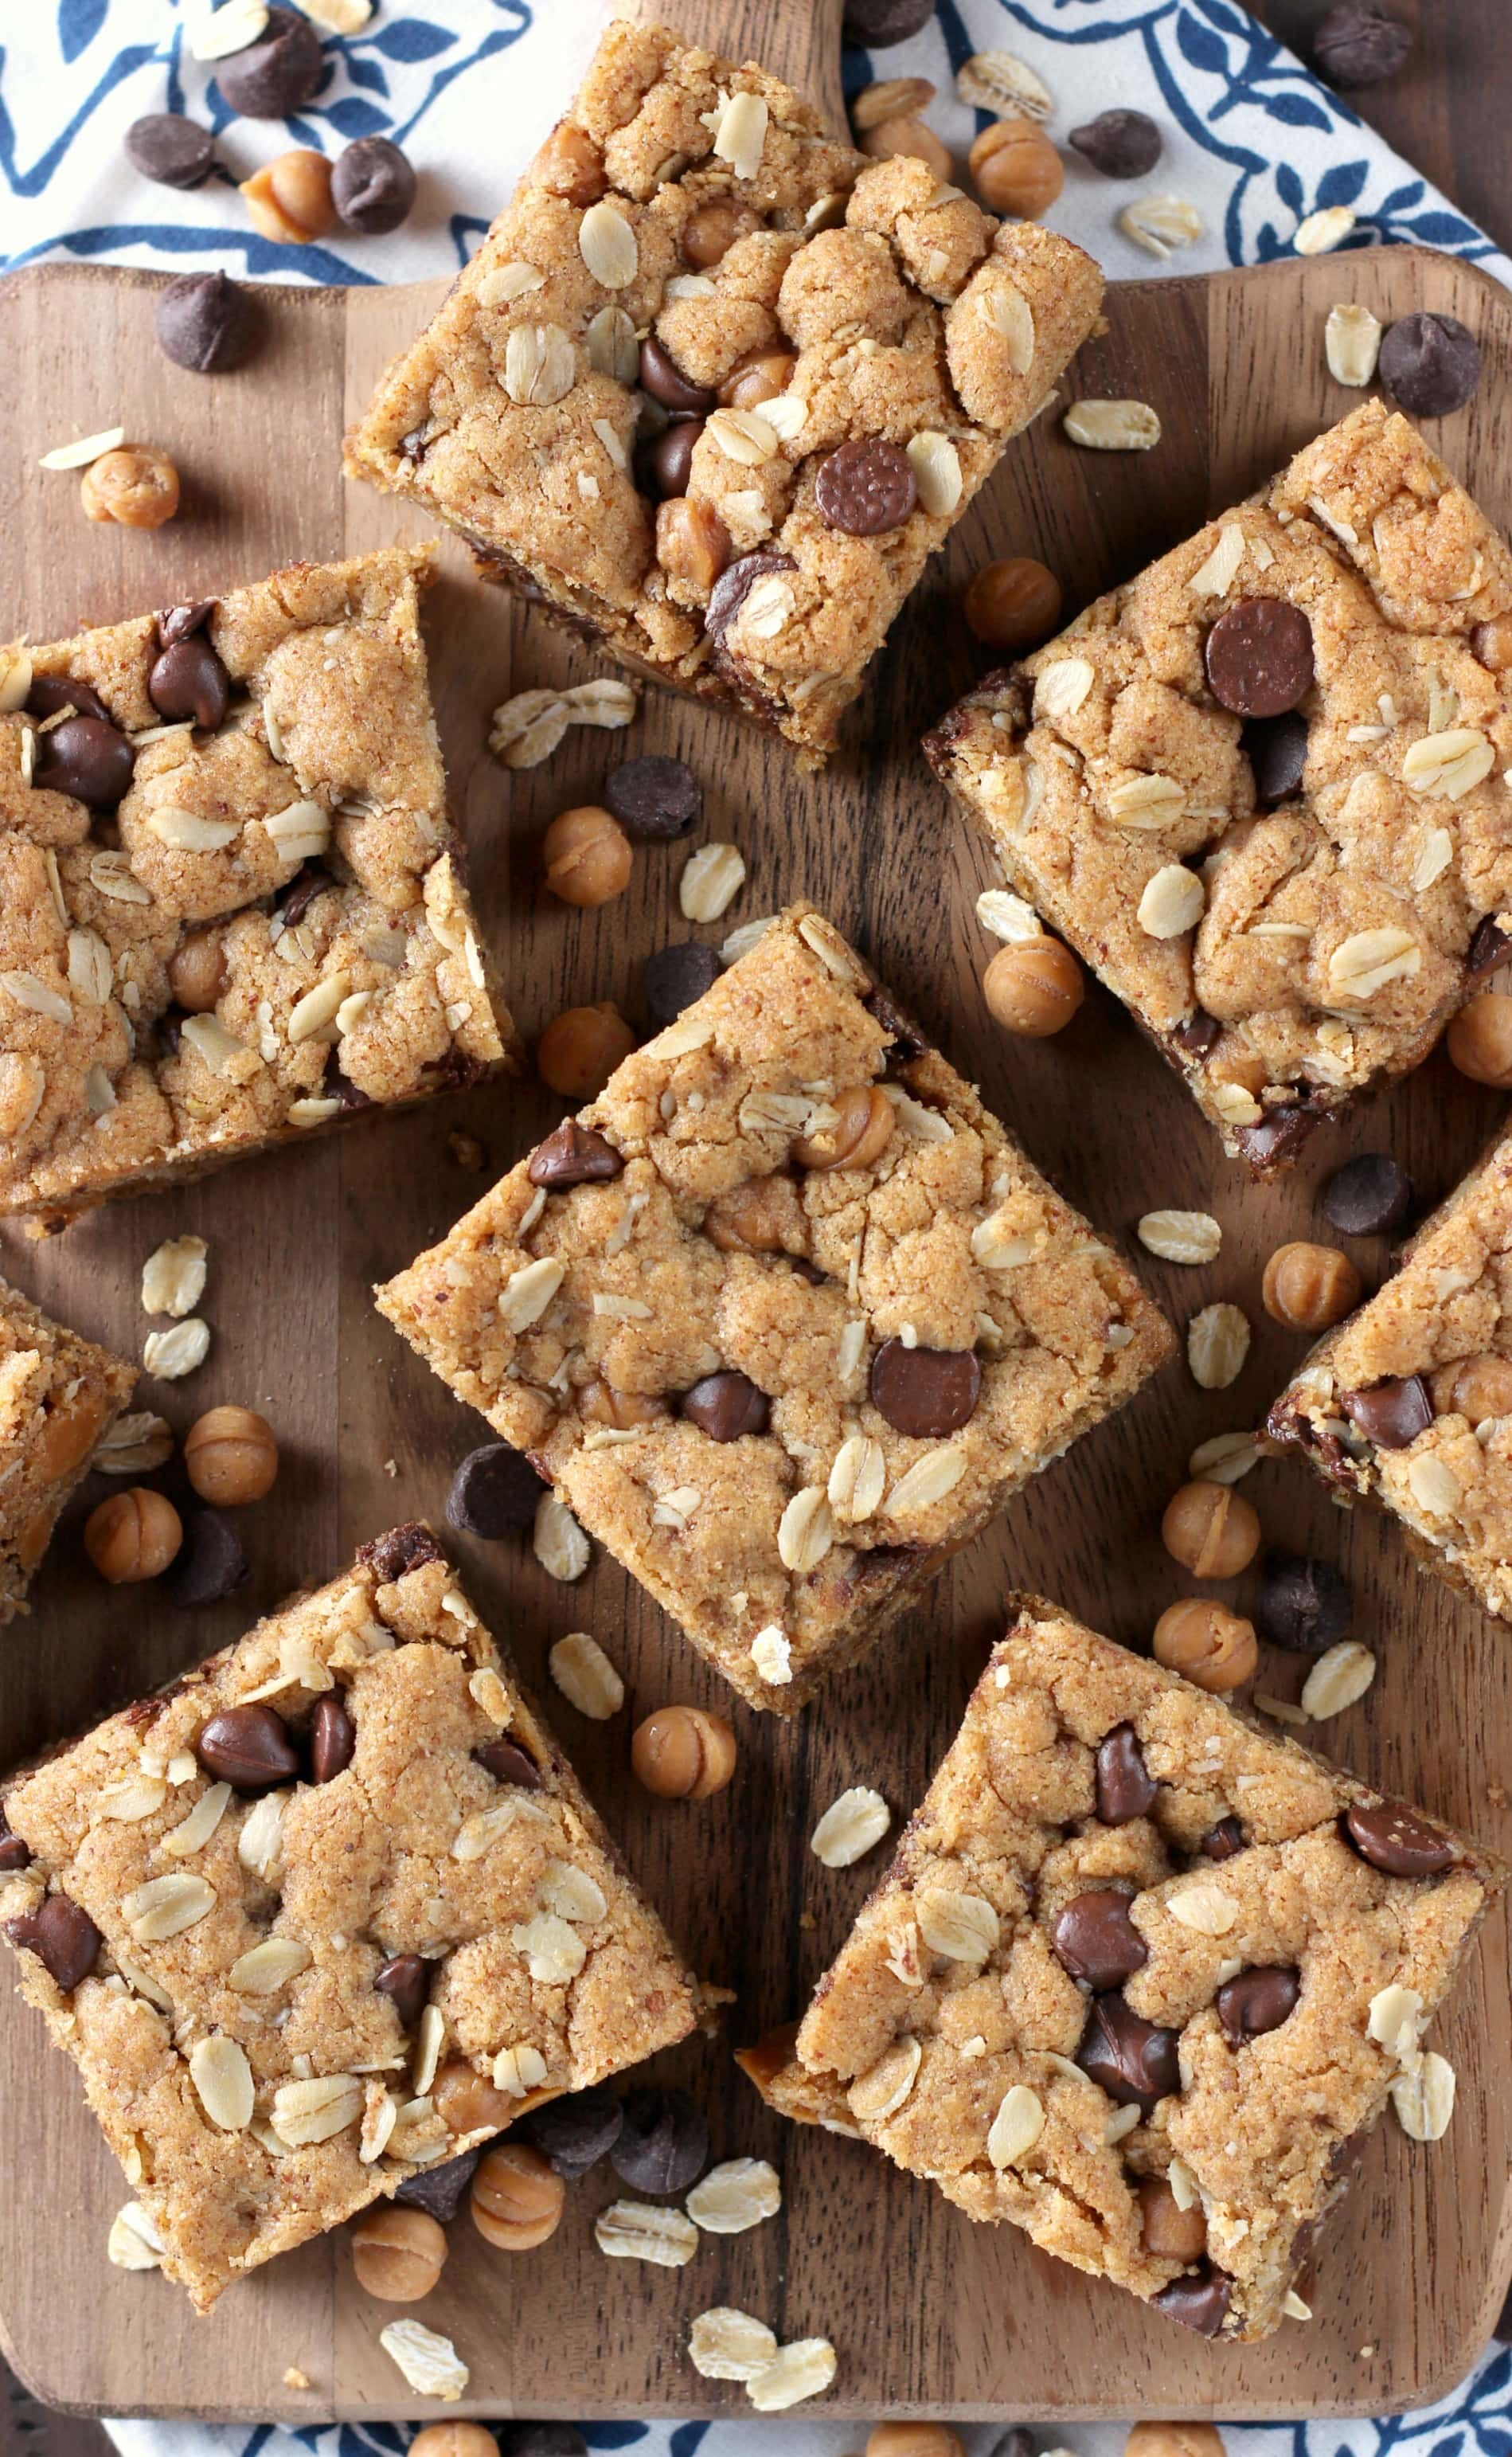 Chocolate Caramel Almond Butter Oat Bars Recipe from A Kitchen Addiction